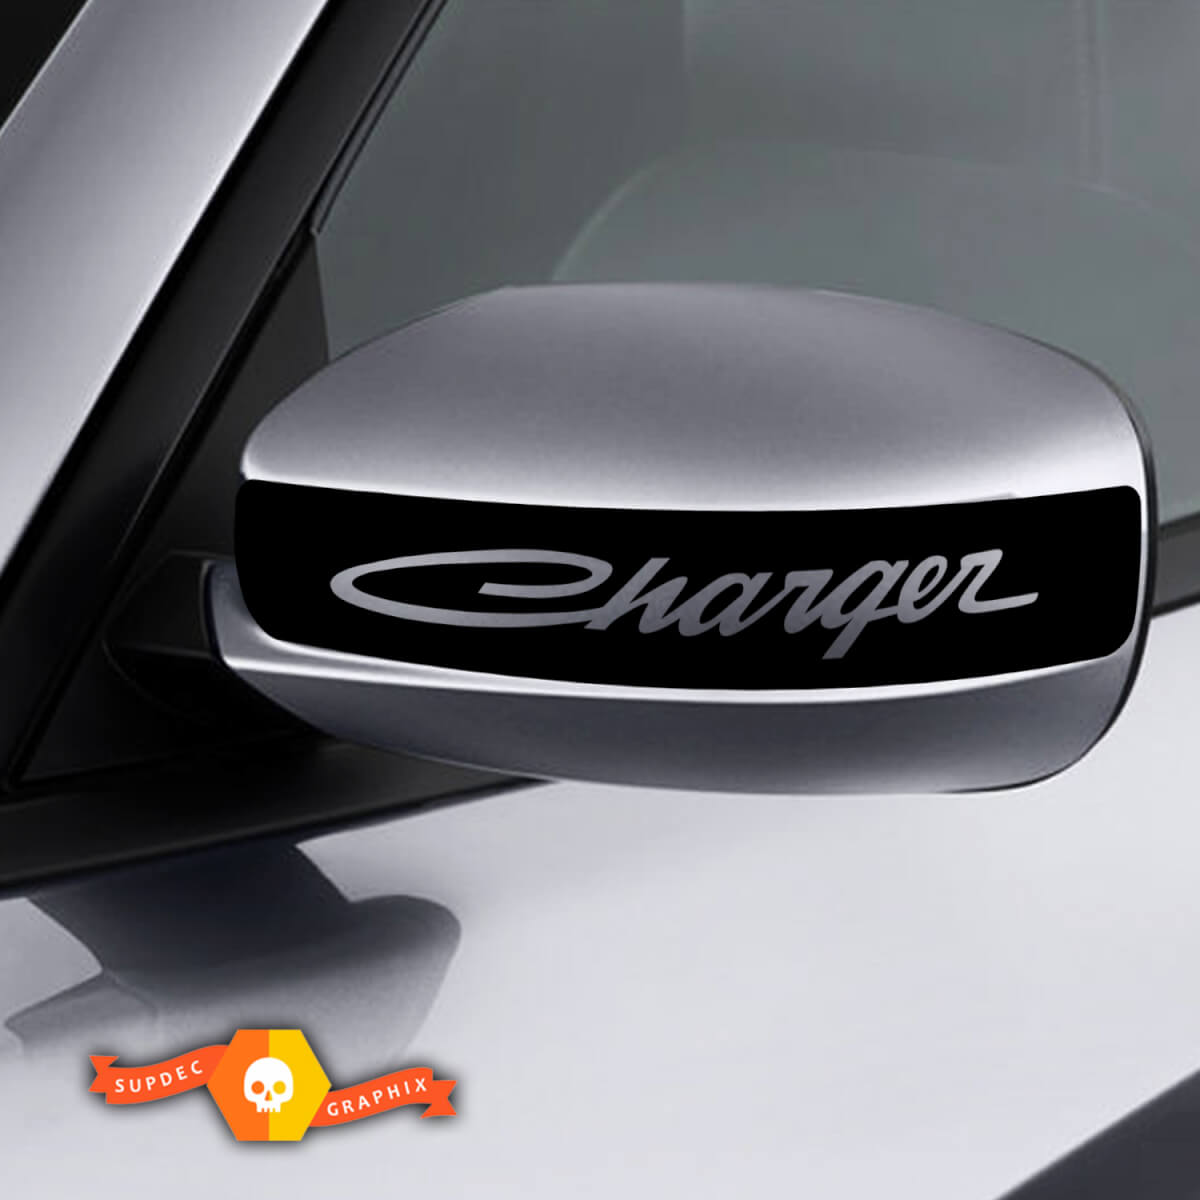 Dodge Charger Mirror Decal Sticker Charger Retro graphics fits to models 2011-2016